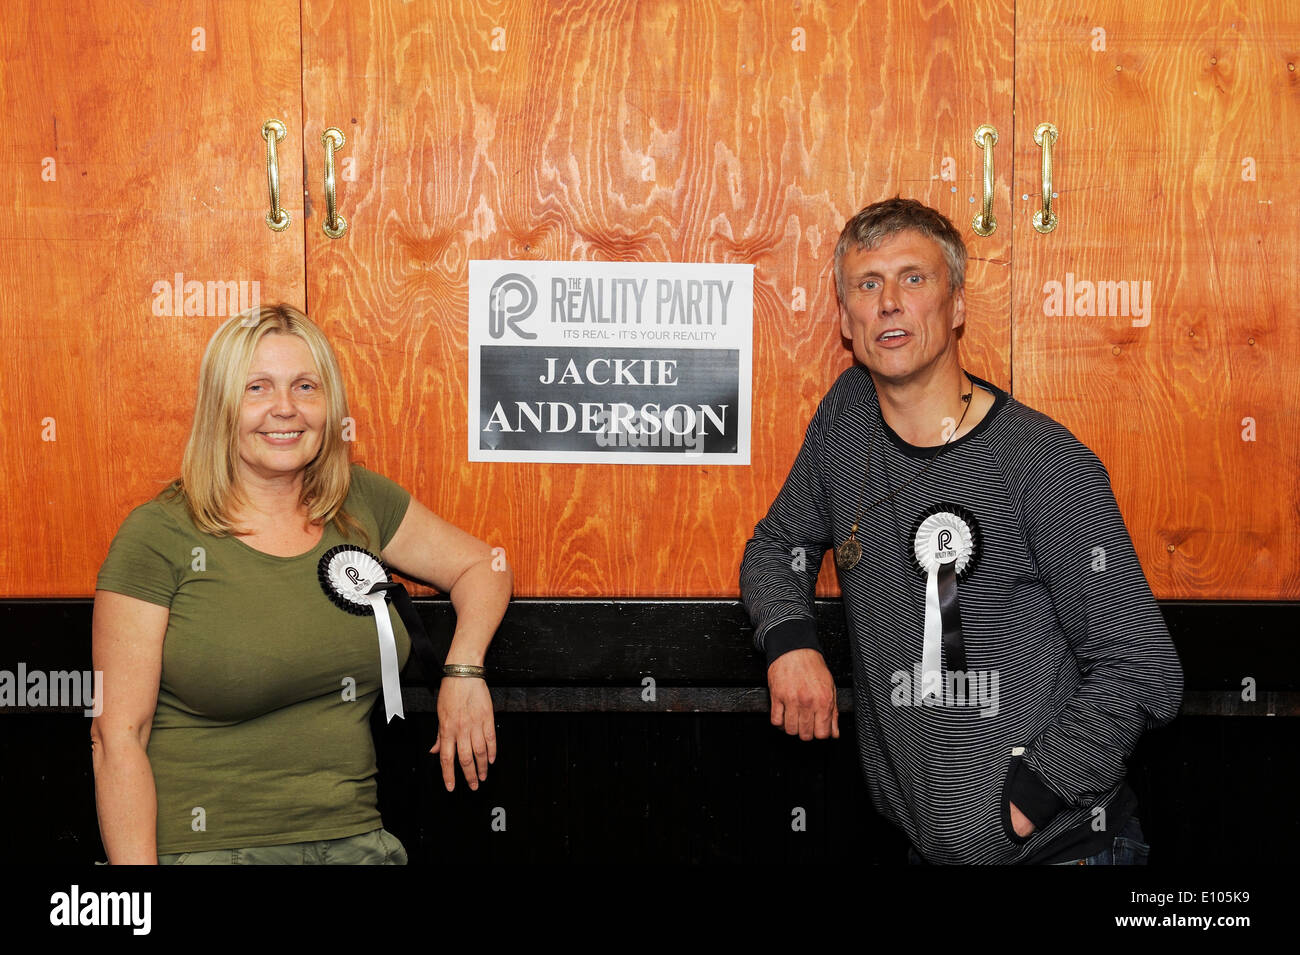 Irlam, Manchester, UK. 20th May 2014. Reality Party candidate Jackie Anderson stands beside her poster with Bez from the Happy Mondays at a campaign meeting to plan election stategy. Credit:  Dave Ellison/Alamy Live News - Stock Image